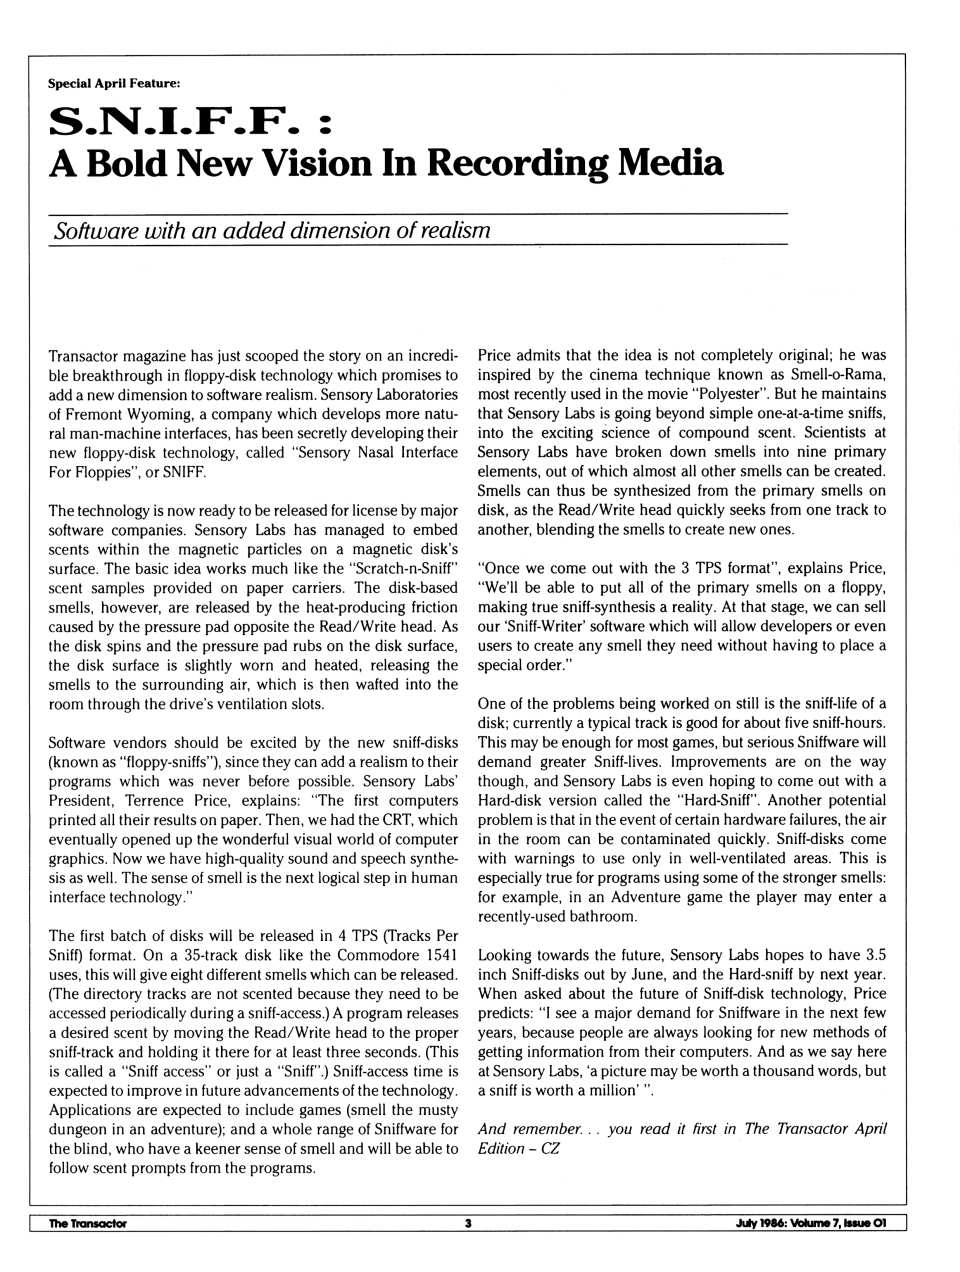 [S.N.I.F.F.: A Bold New Vision in Recording Media]